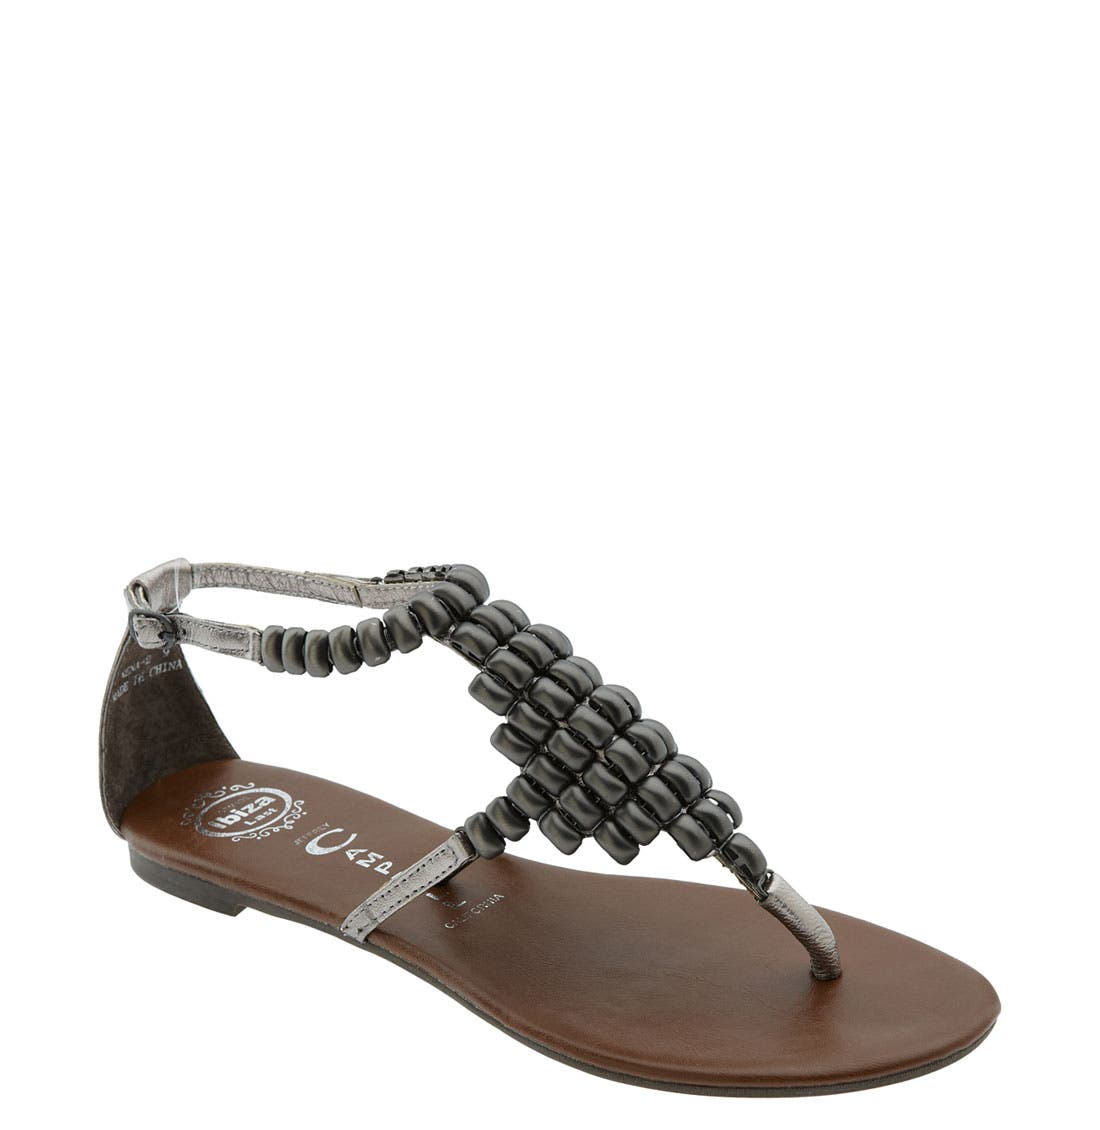 Alternate Image 1 Selected - Jeffrey Campbell 'Nena 2' Sandal